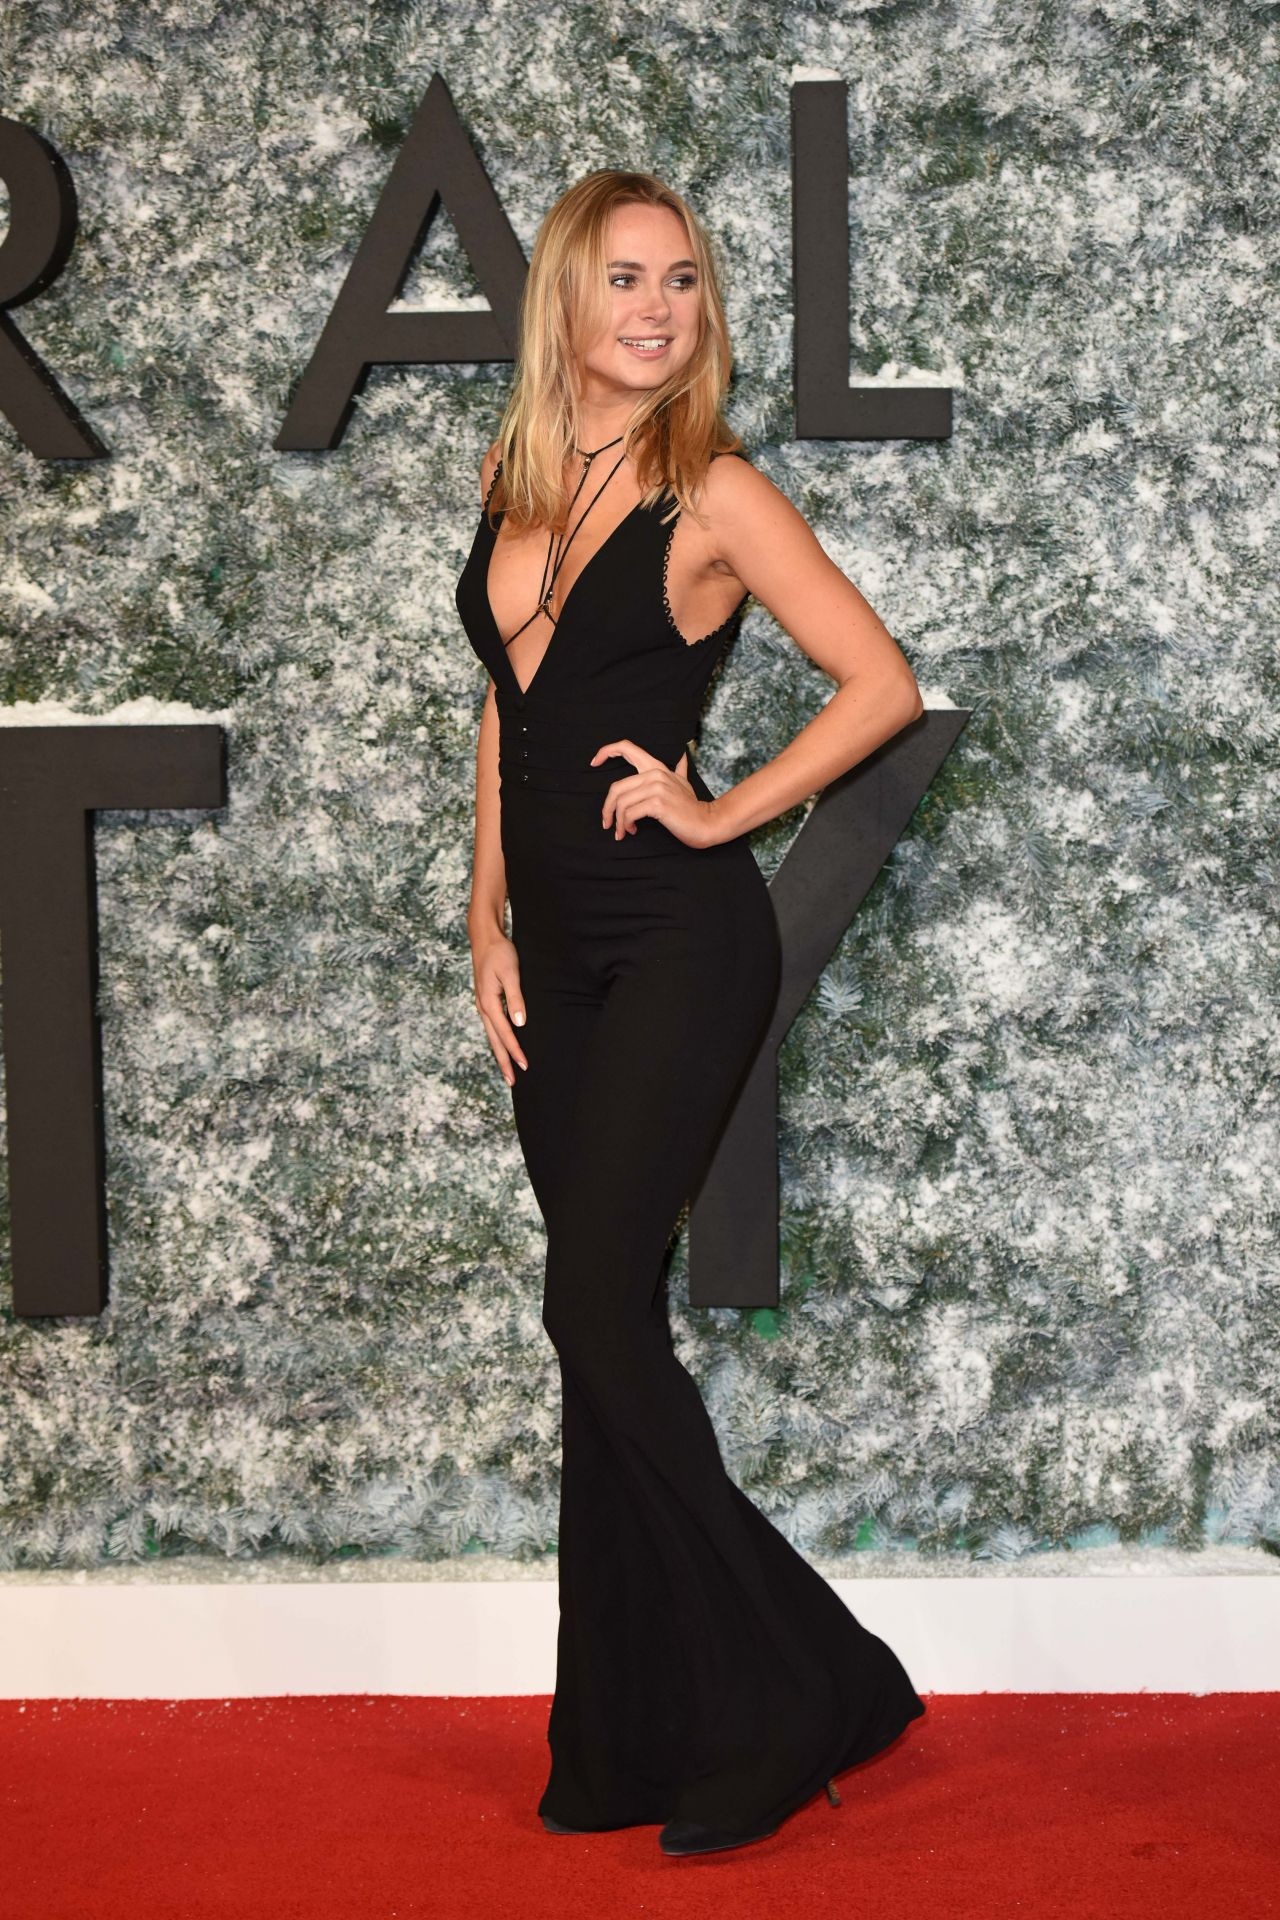 Kimberley Garner Collateral Beauty Pemiere In London 12 15 2016